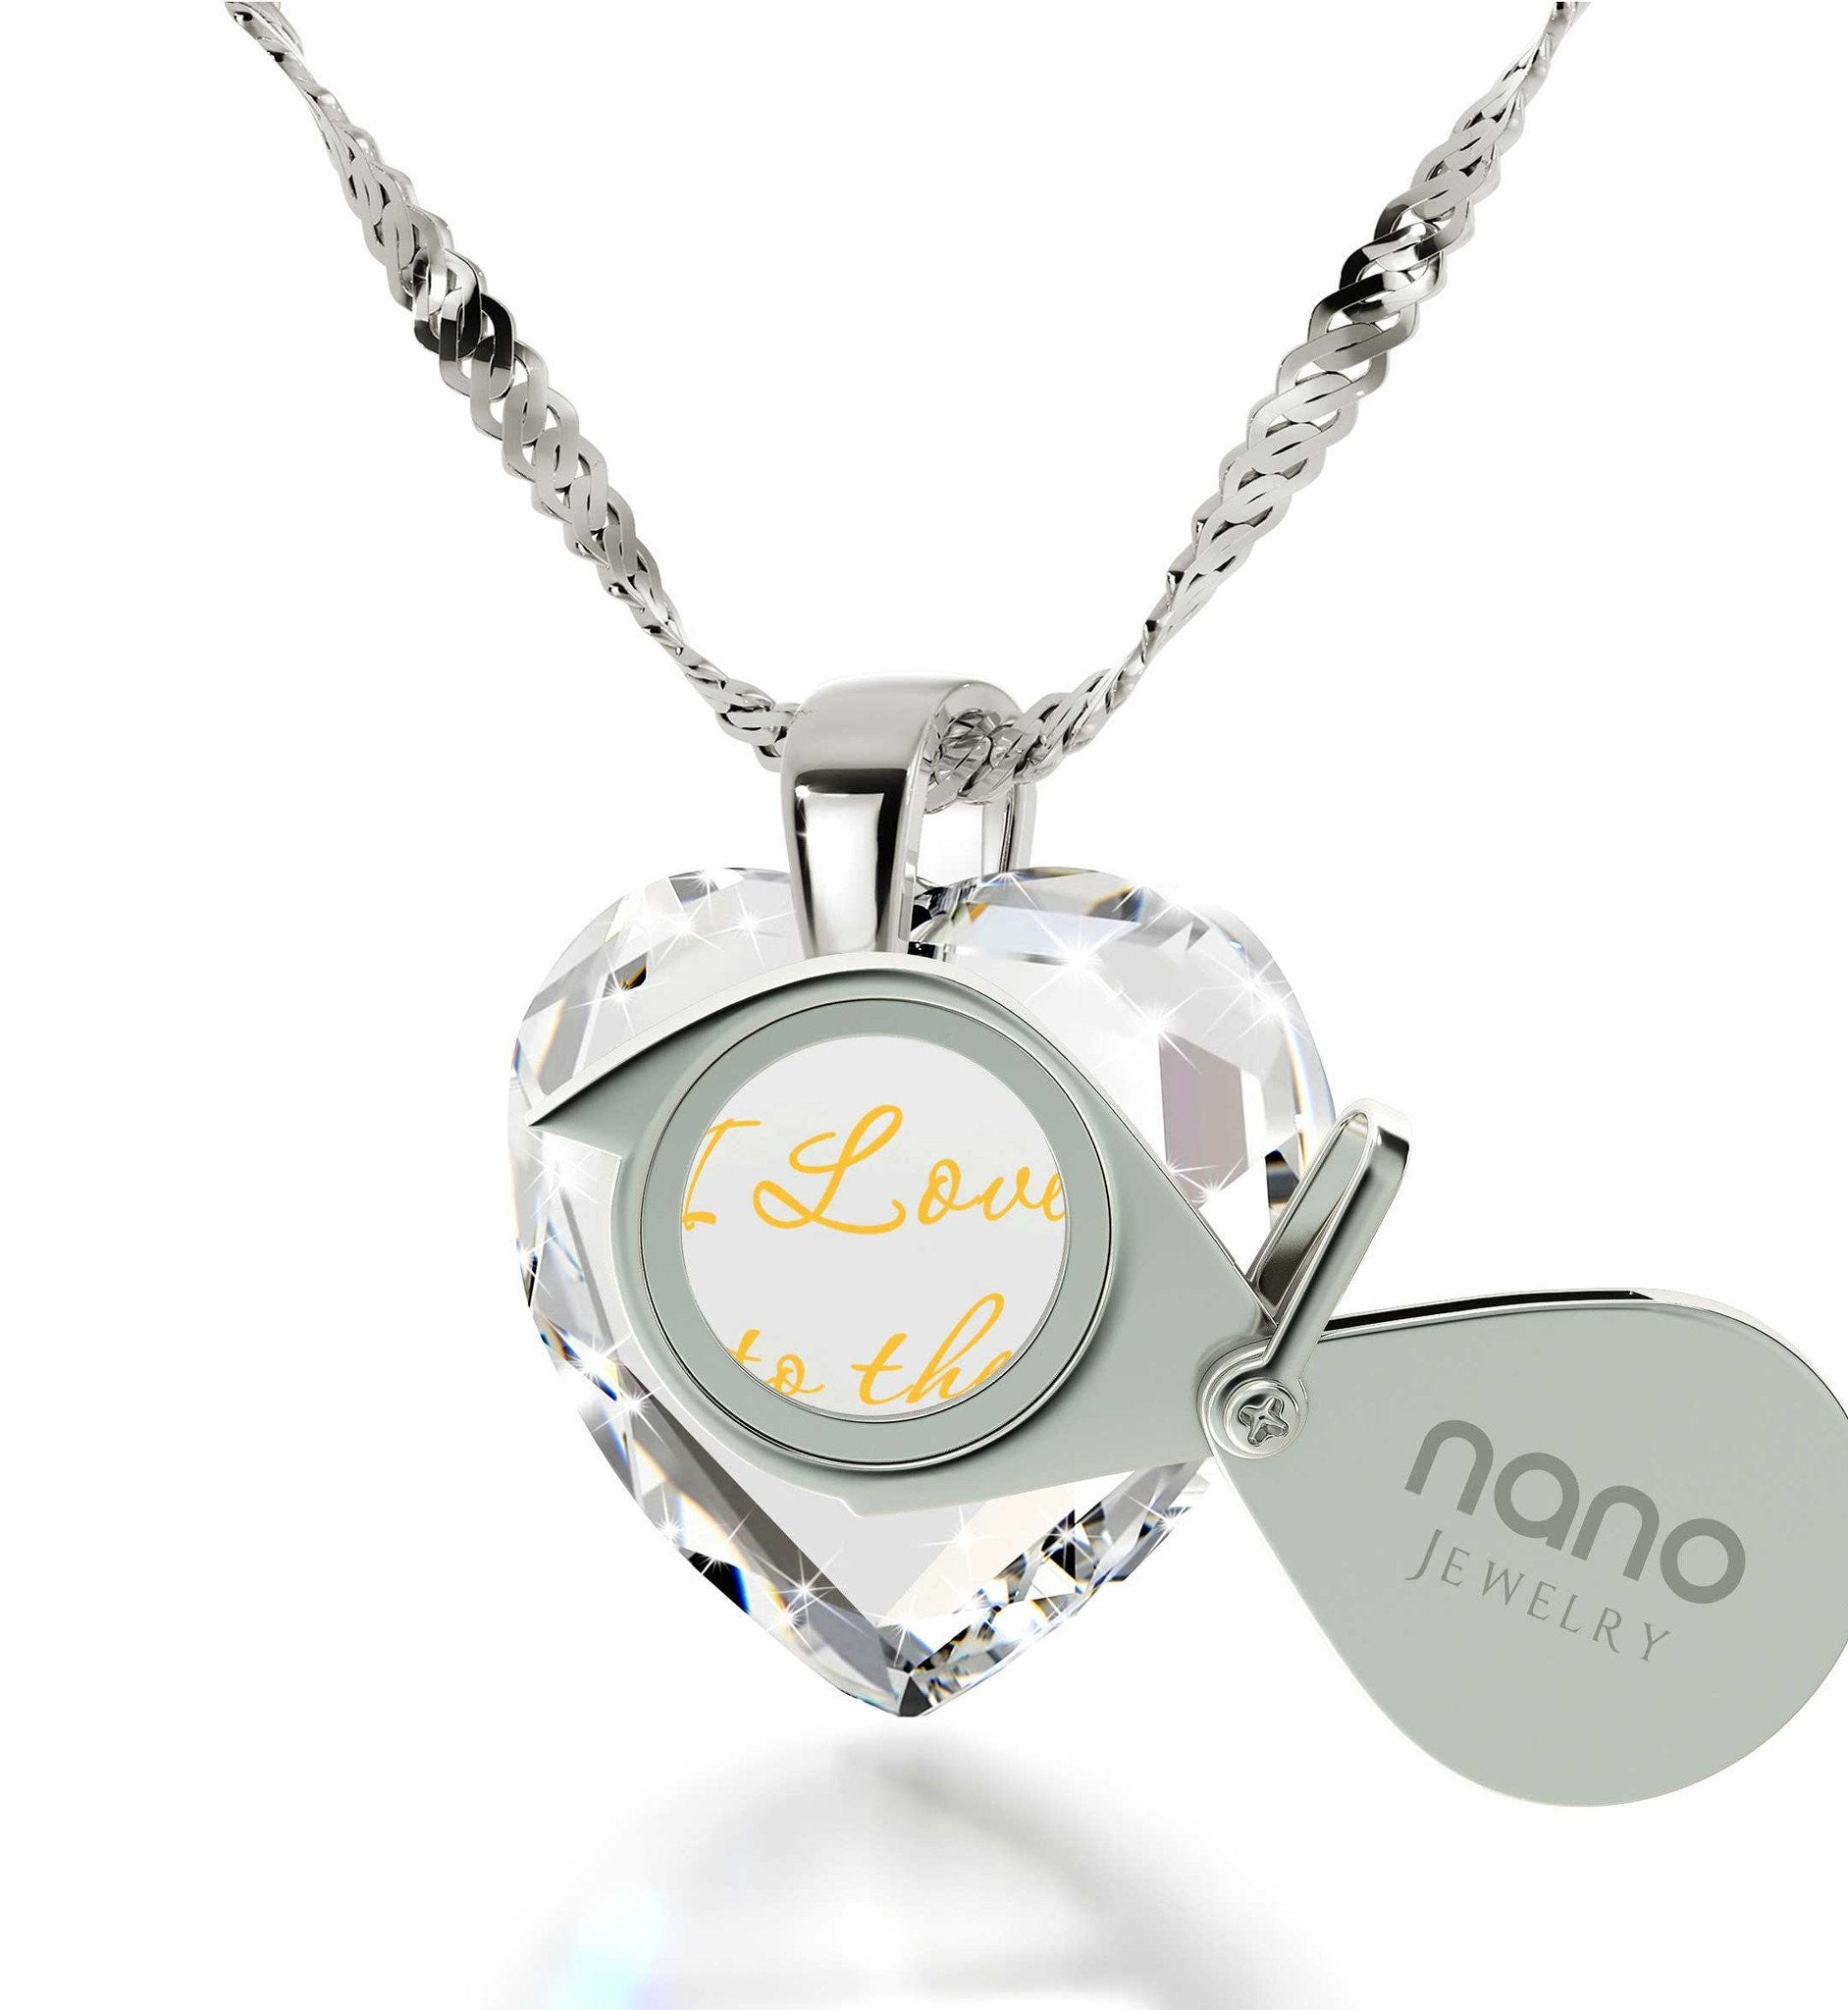 """Good Valentines Day Gifts for Girlfriend,Sterling Silver Necklace Chain, Cool Xmas Presents, Nano Jewelry"""